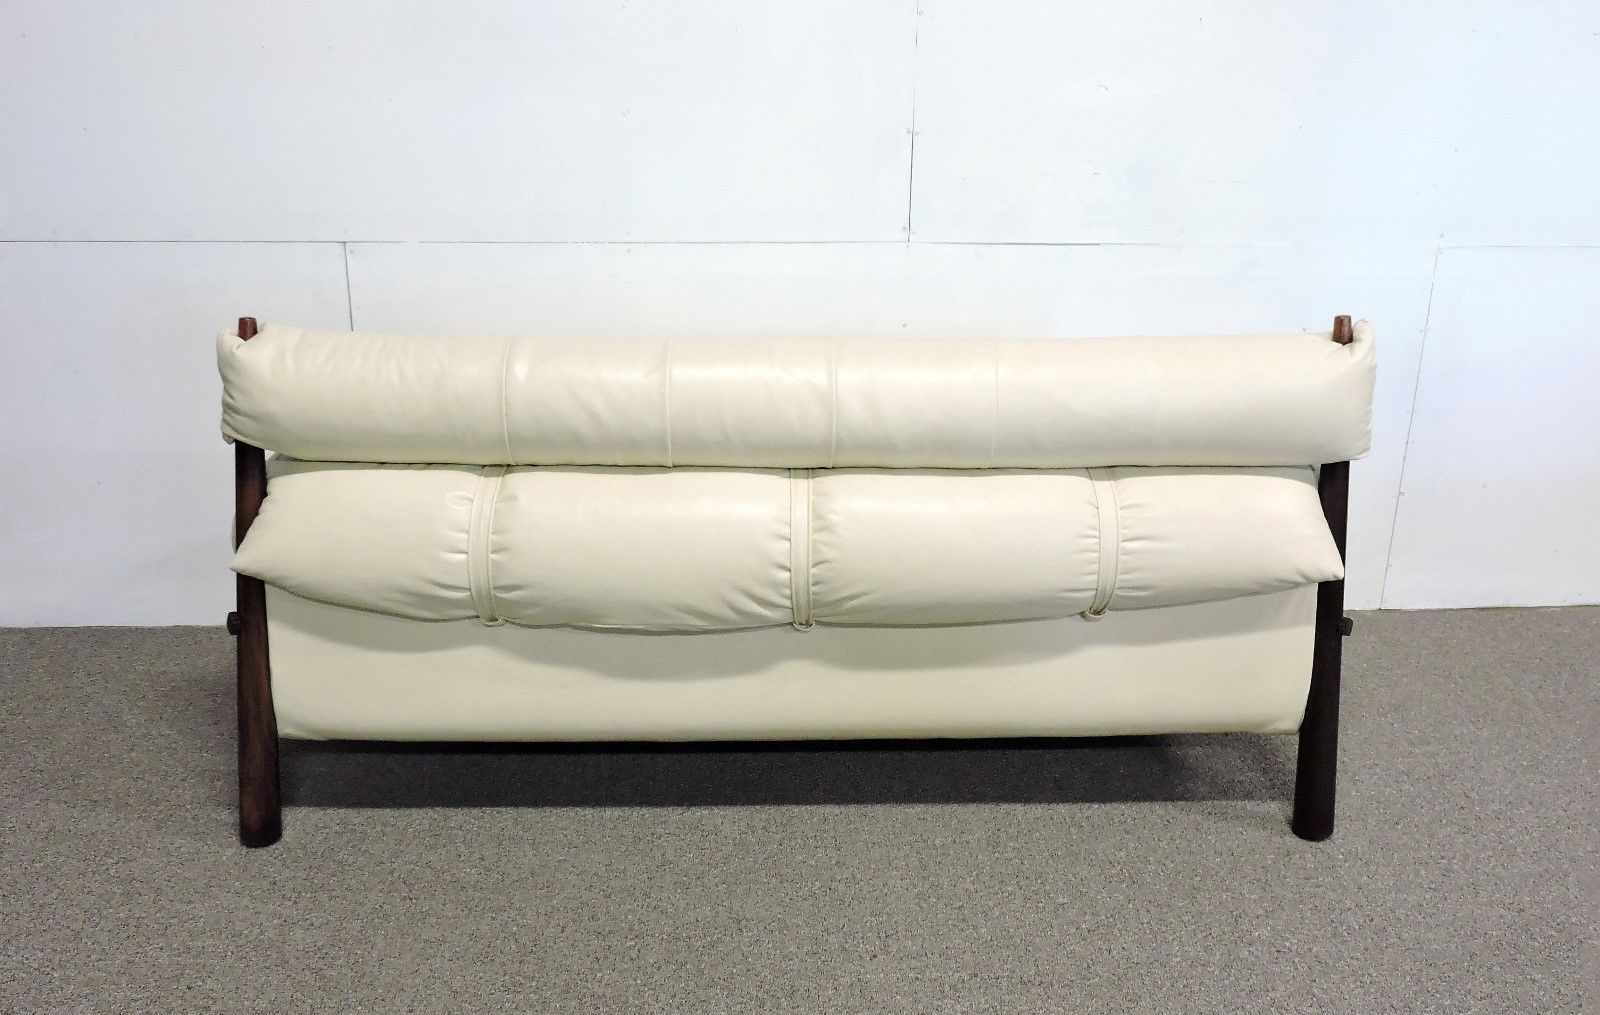 Retro Inflatable Sofa Percival Lafer Mid Century Modern Brazilian Rosewood Sofa New